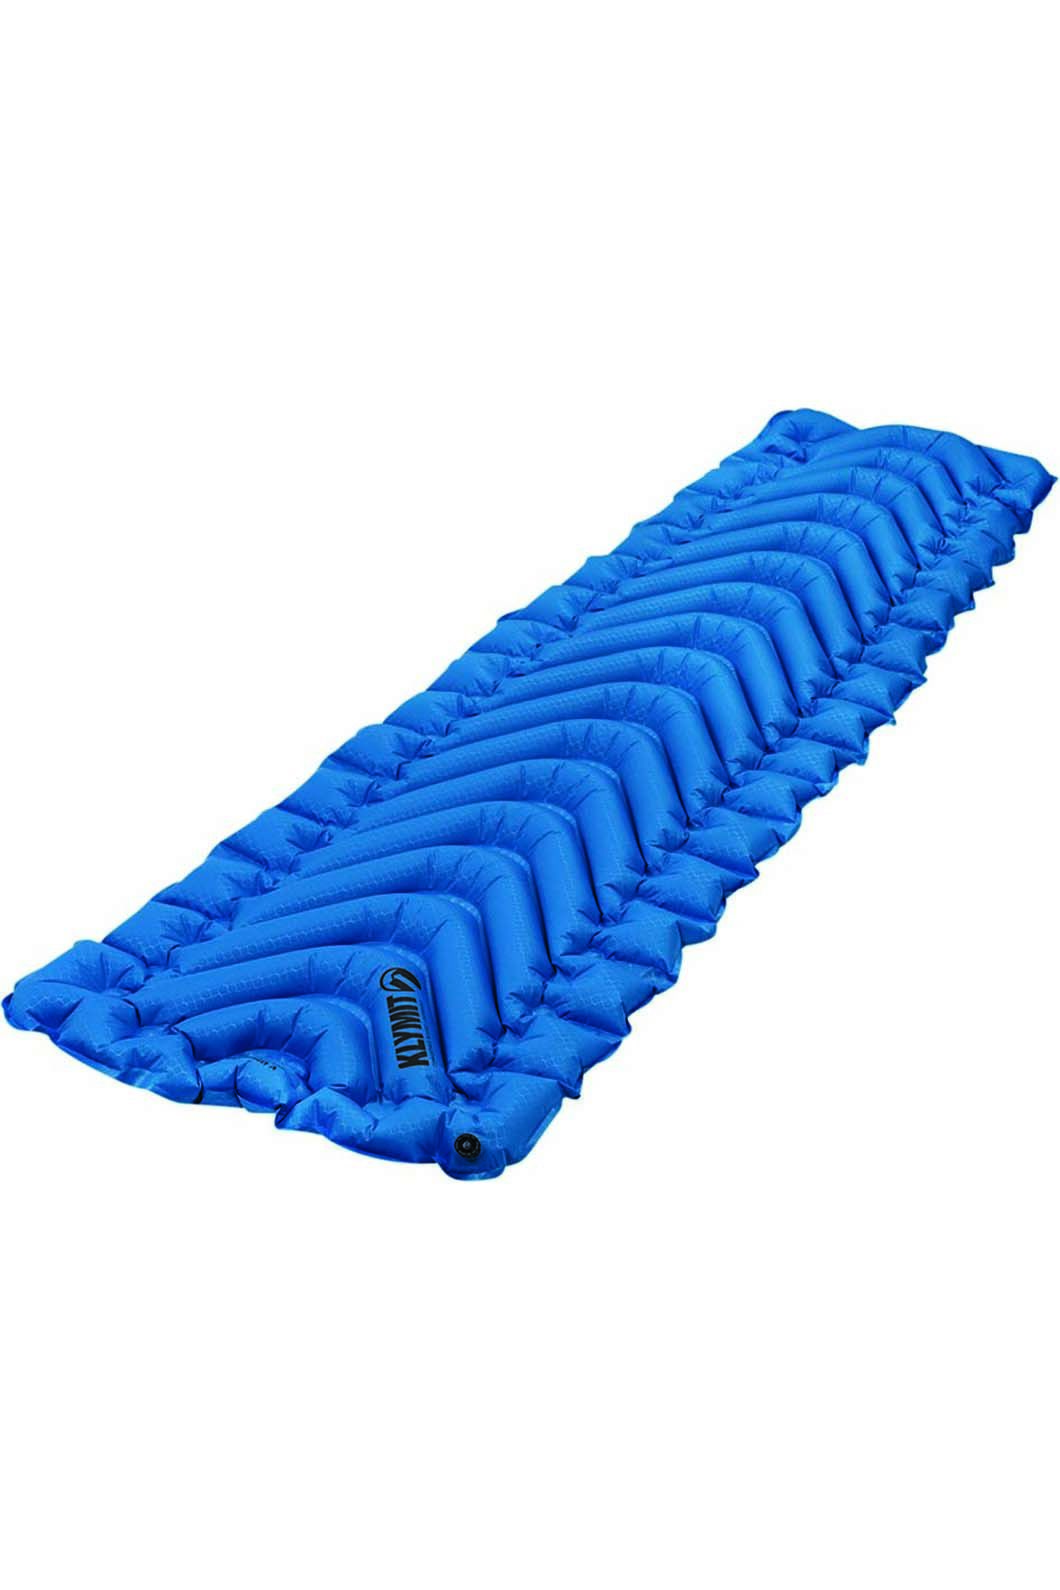 Klymit Static V Ultralite Inflatable Mat, None, hi-res